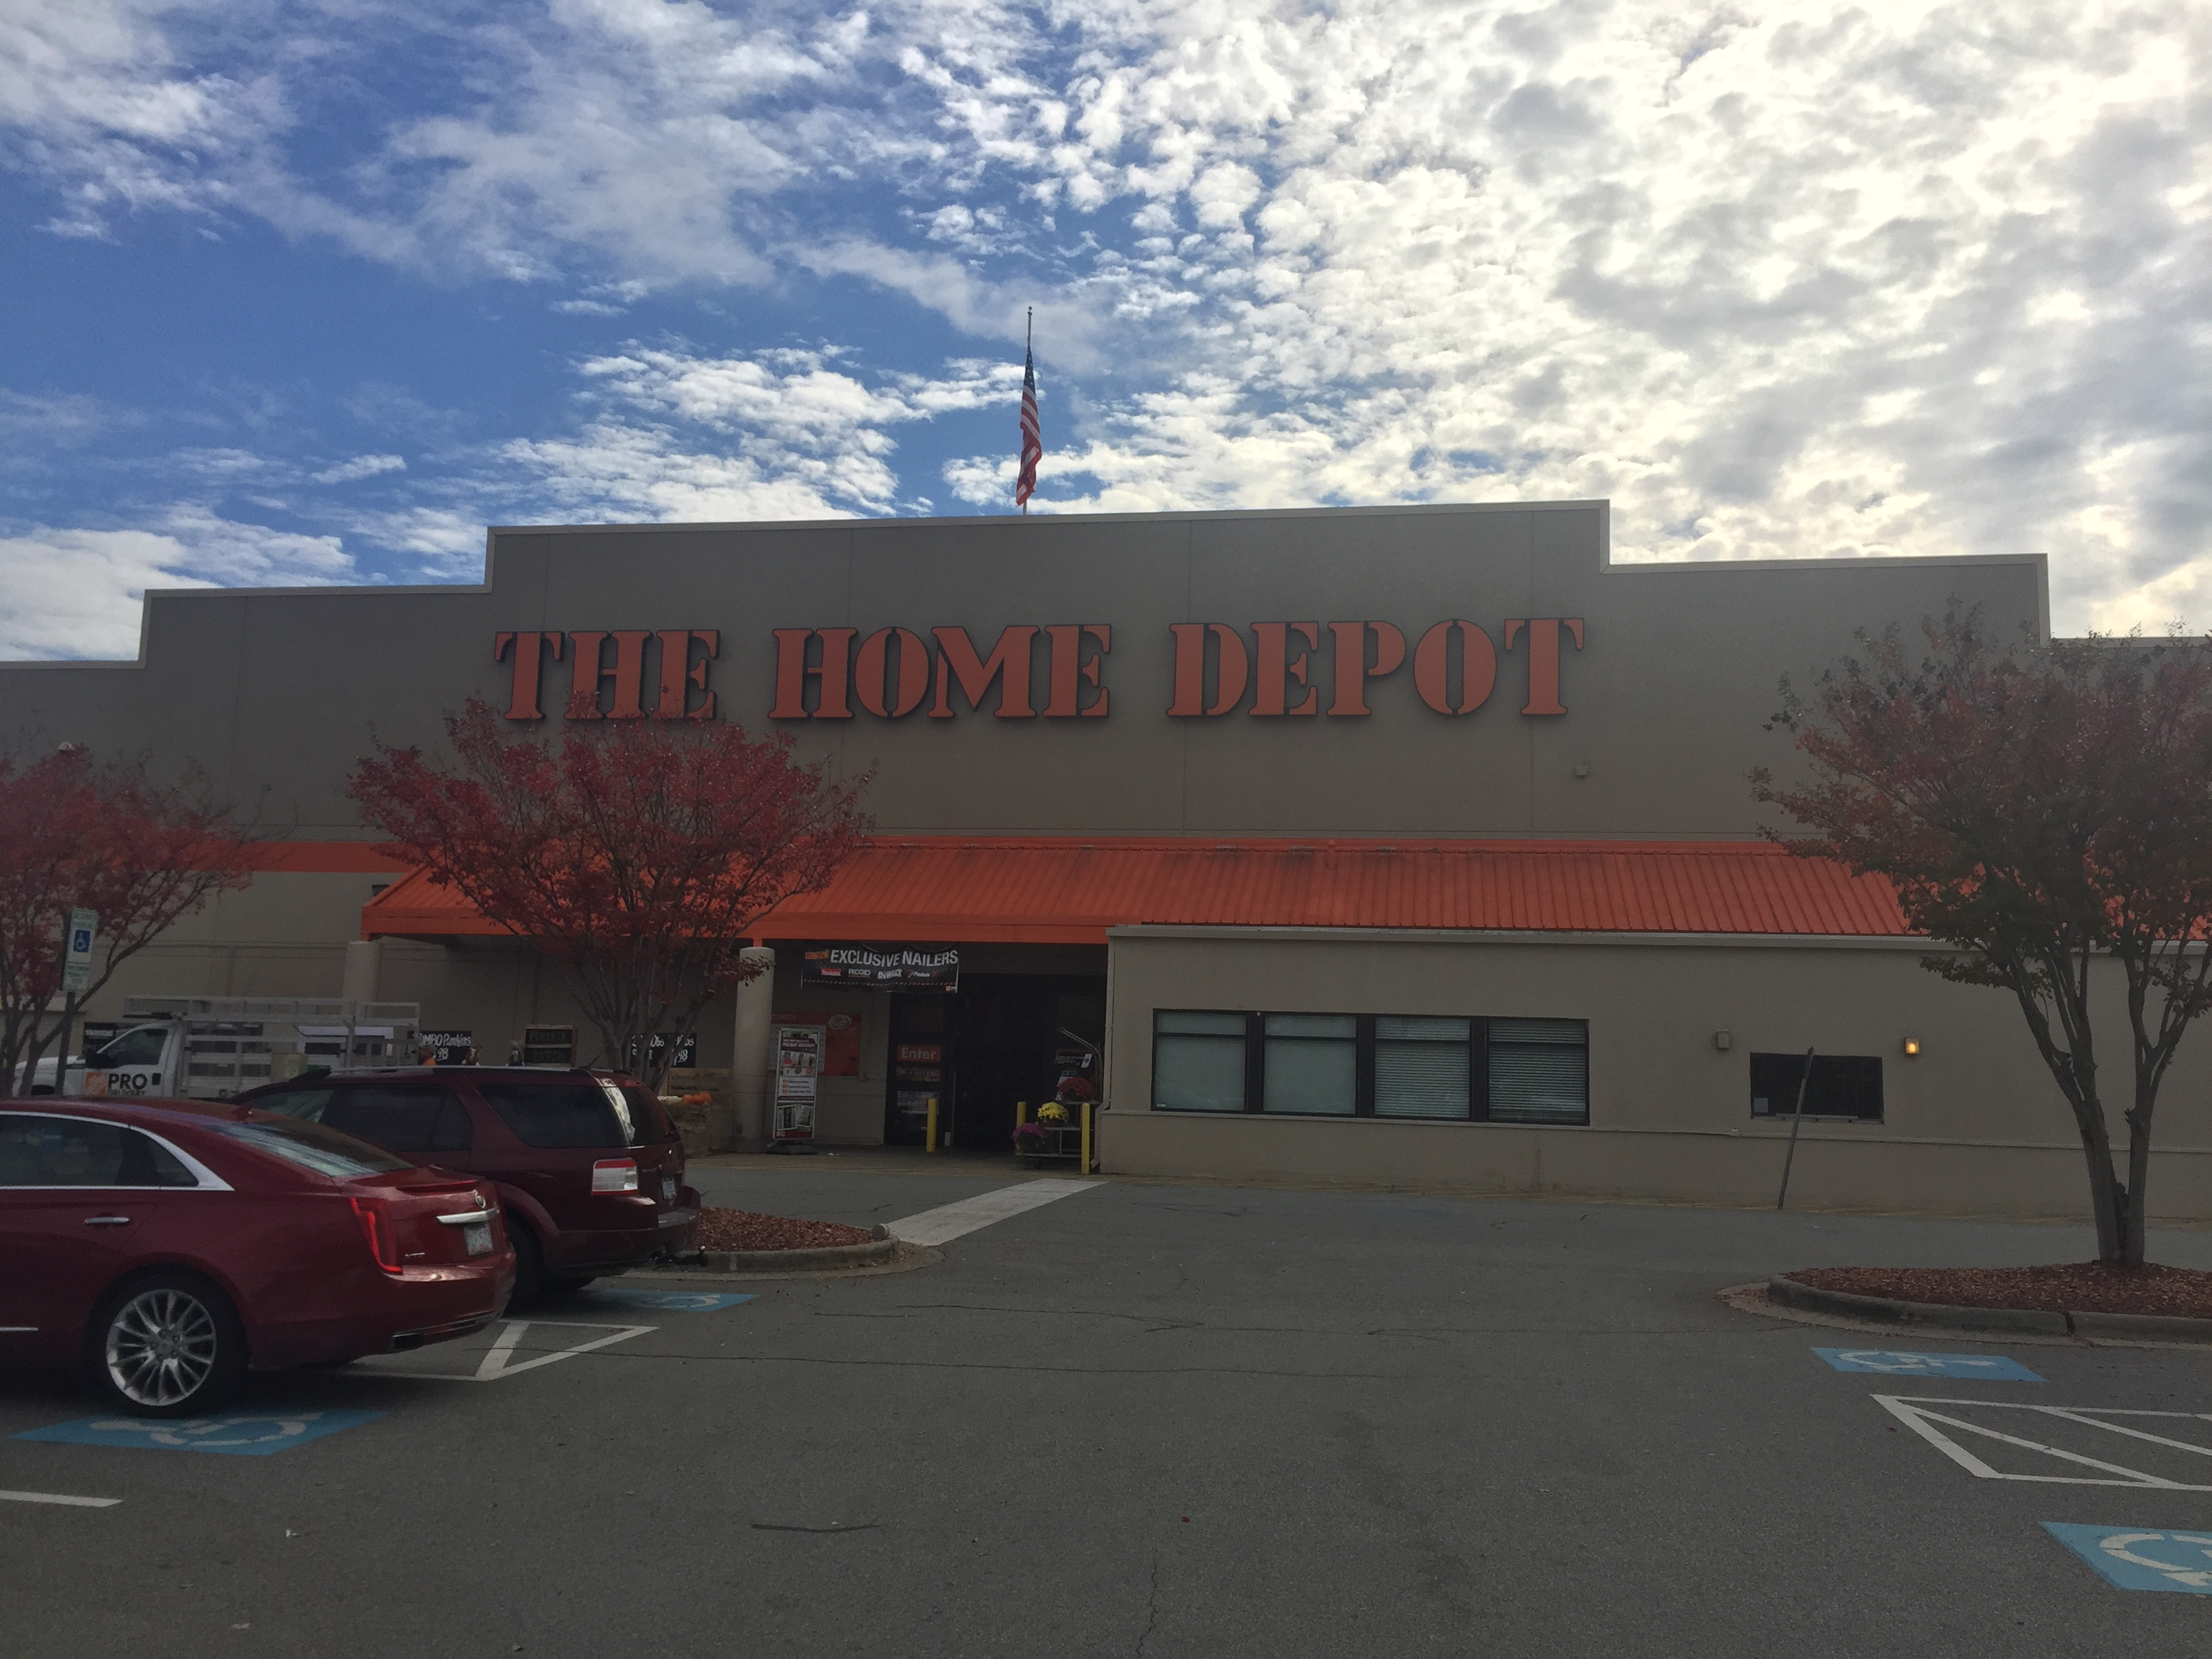 The home depot in greensboro nc whitepages